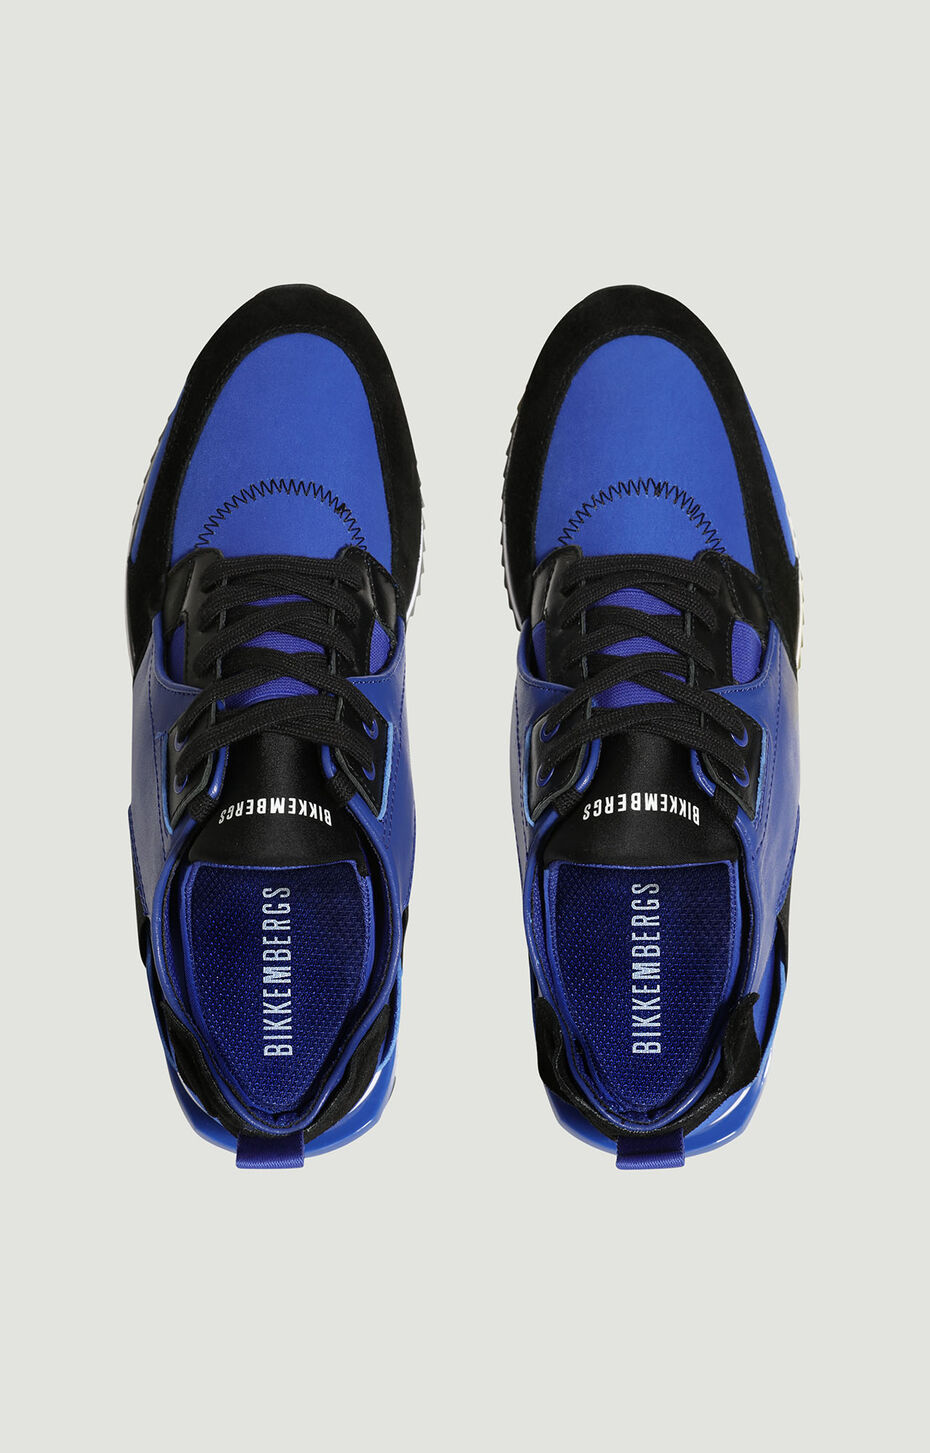 HAMON  -  SLIP ON, Bluette/Black, hi-res-1